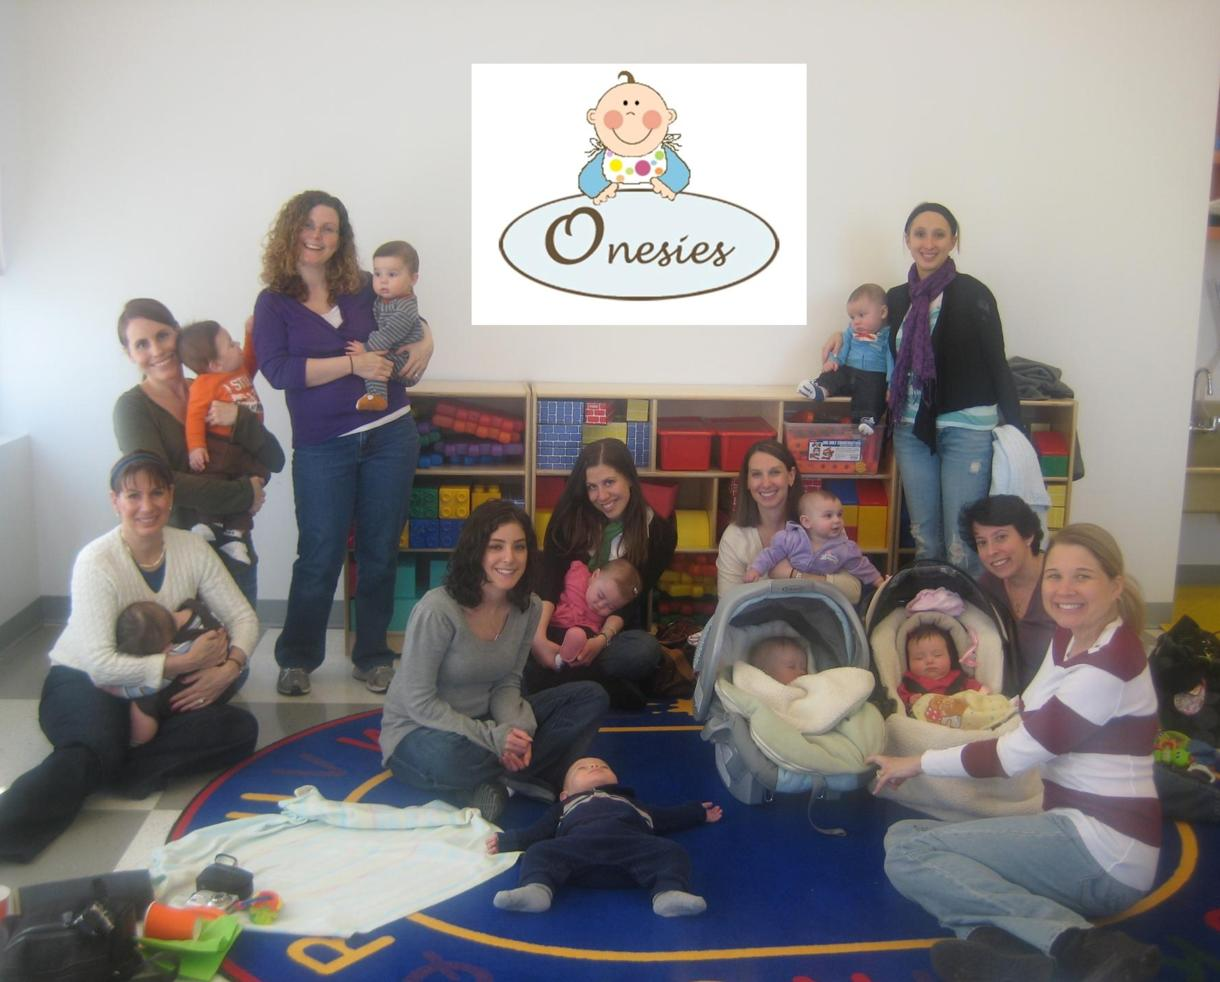 $110 for Series of Mom and Baby Classes with Onesies DC (MD, DC, and N. VA locations) (50% off - $220 value)